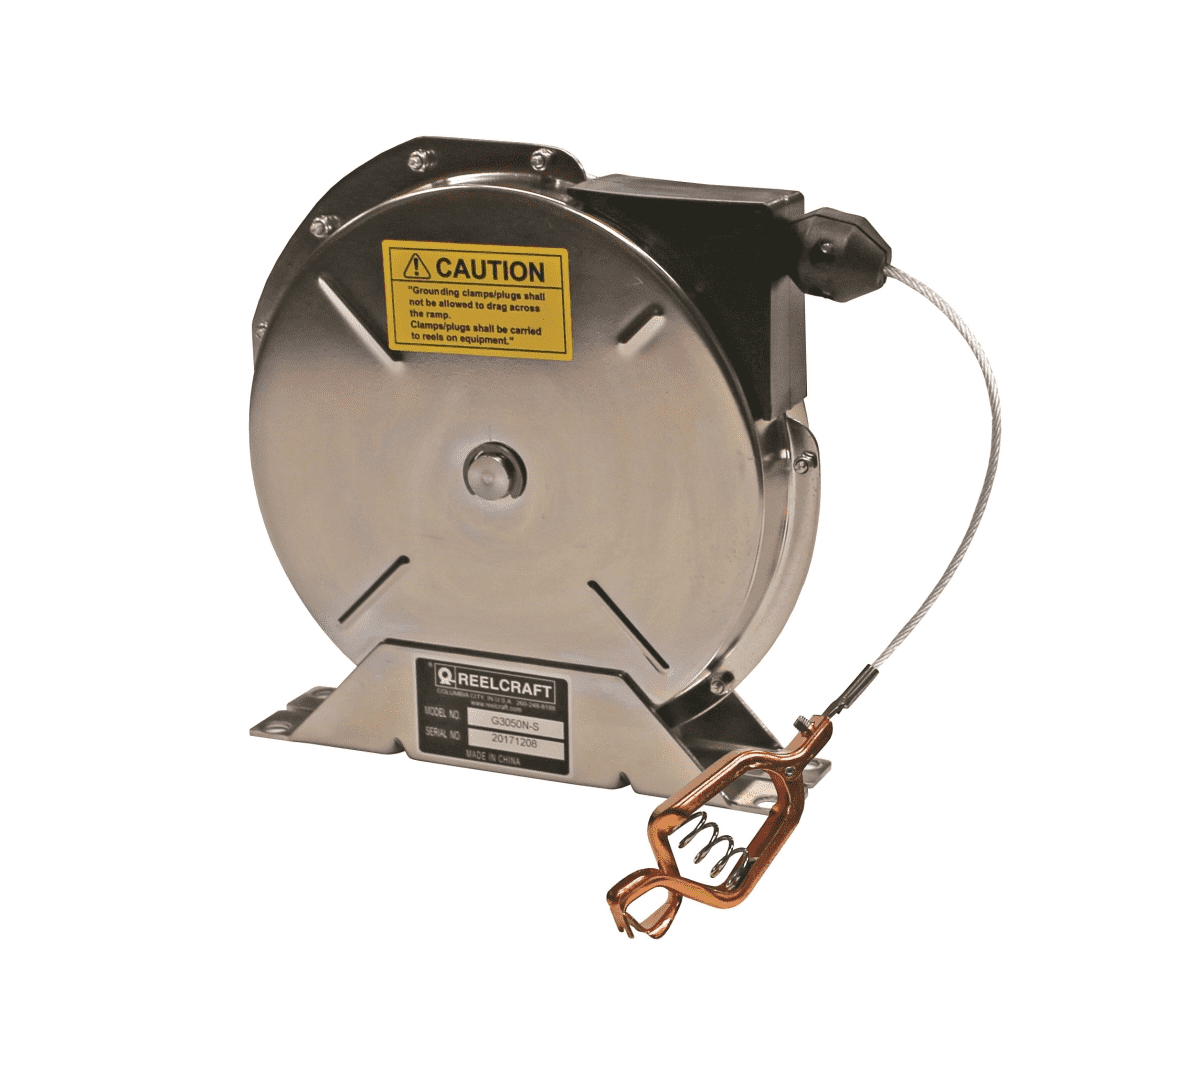 Static Discharge/Grounding Reels